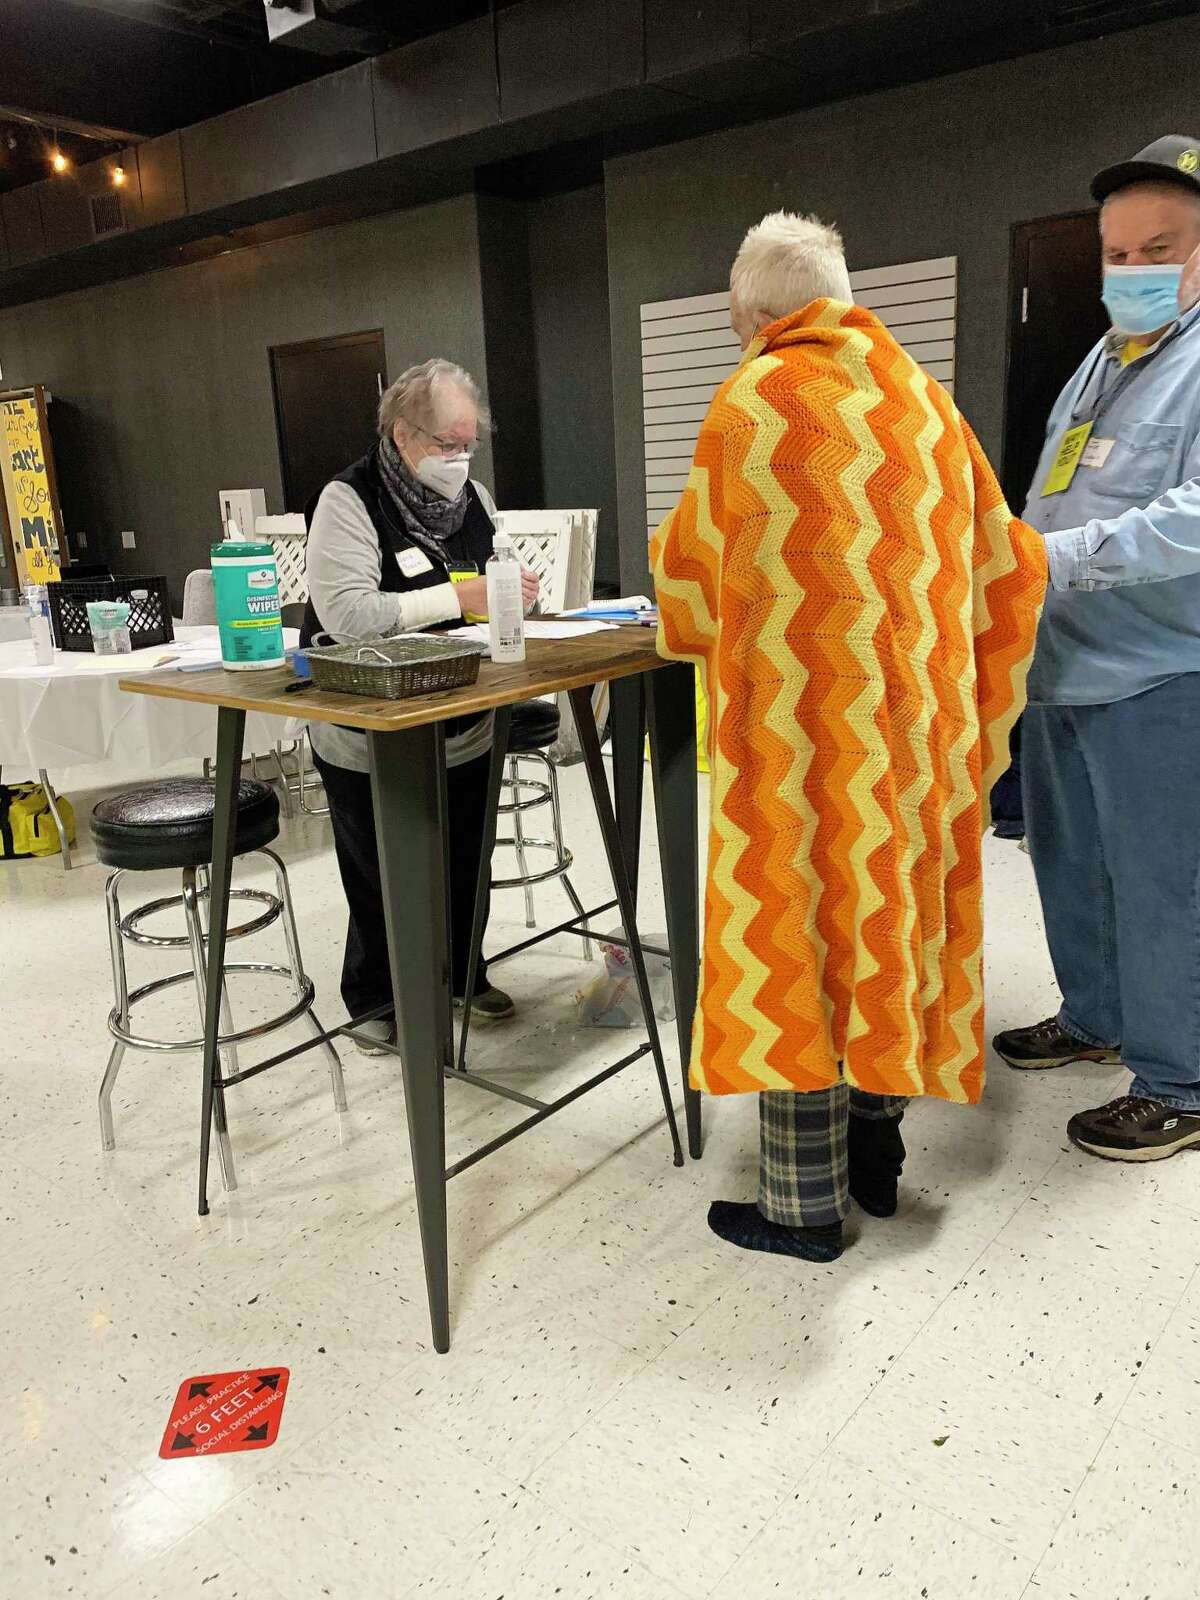 Volunteer Diana Braziel registers a homeless person wrapped in a blanket while he receives assistance to stand from volunteer Joe Lewis. The Foundry United Methodist Church partnered with Cy-Fair Helping Hands to help the homeless and elderly through the frigid weather.